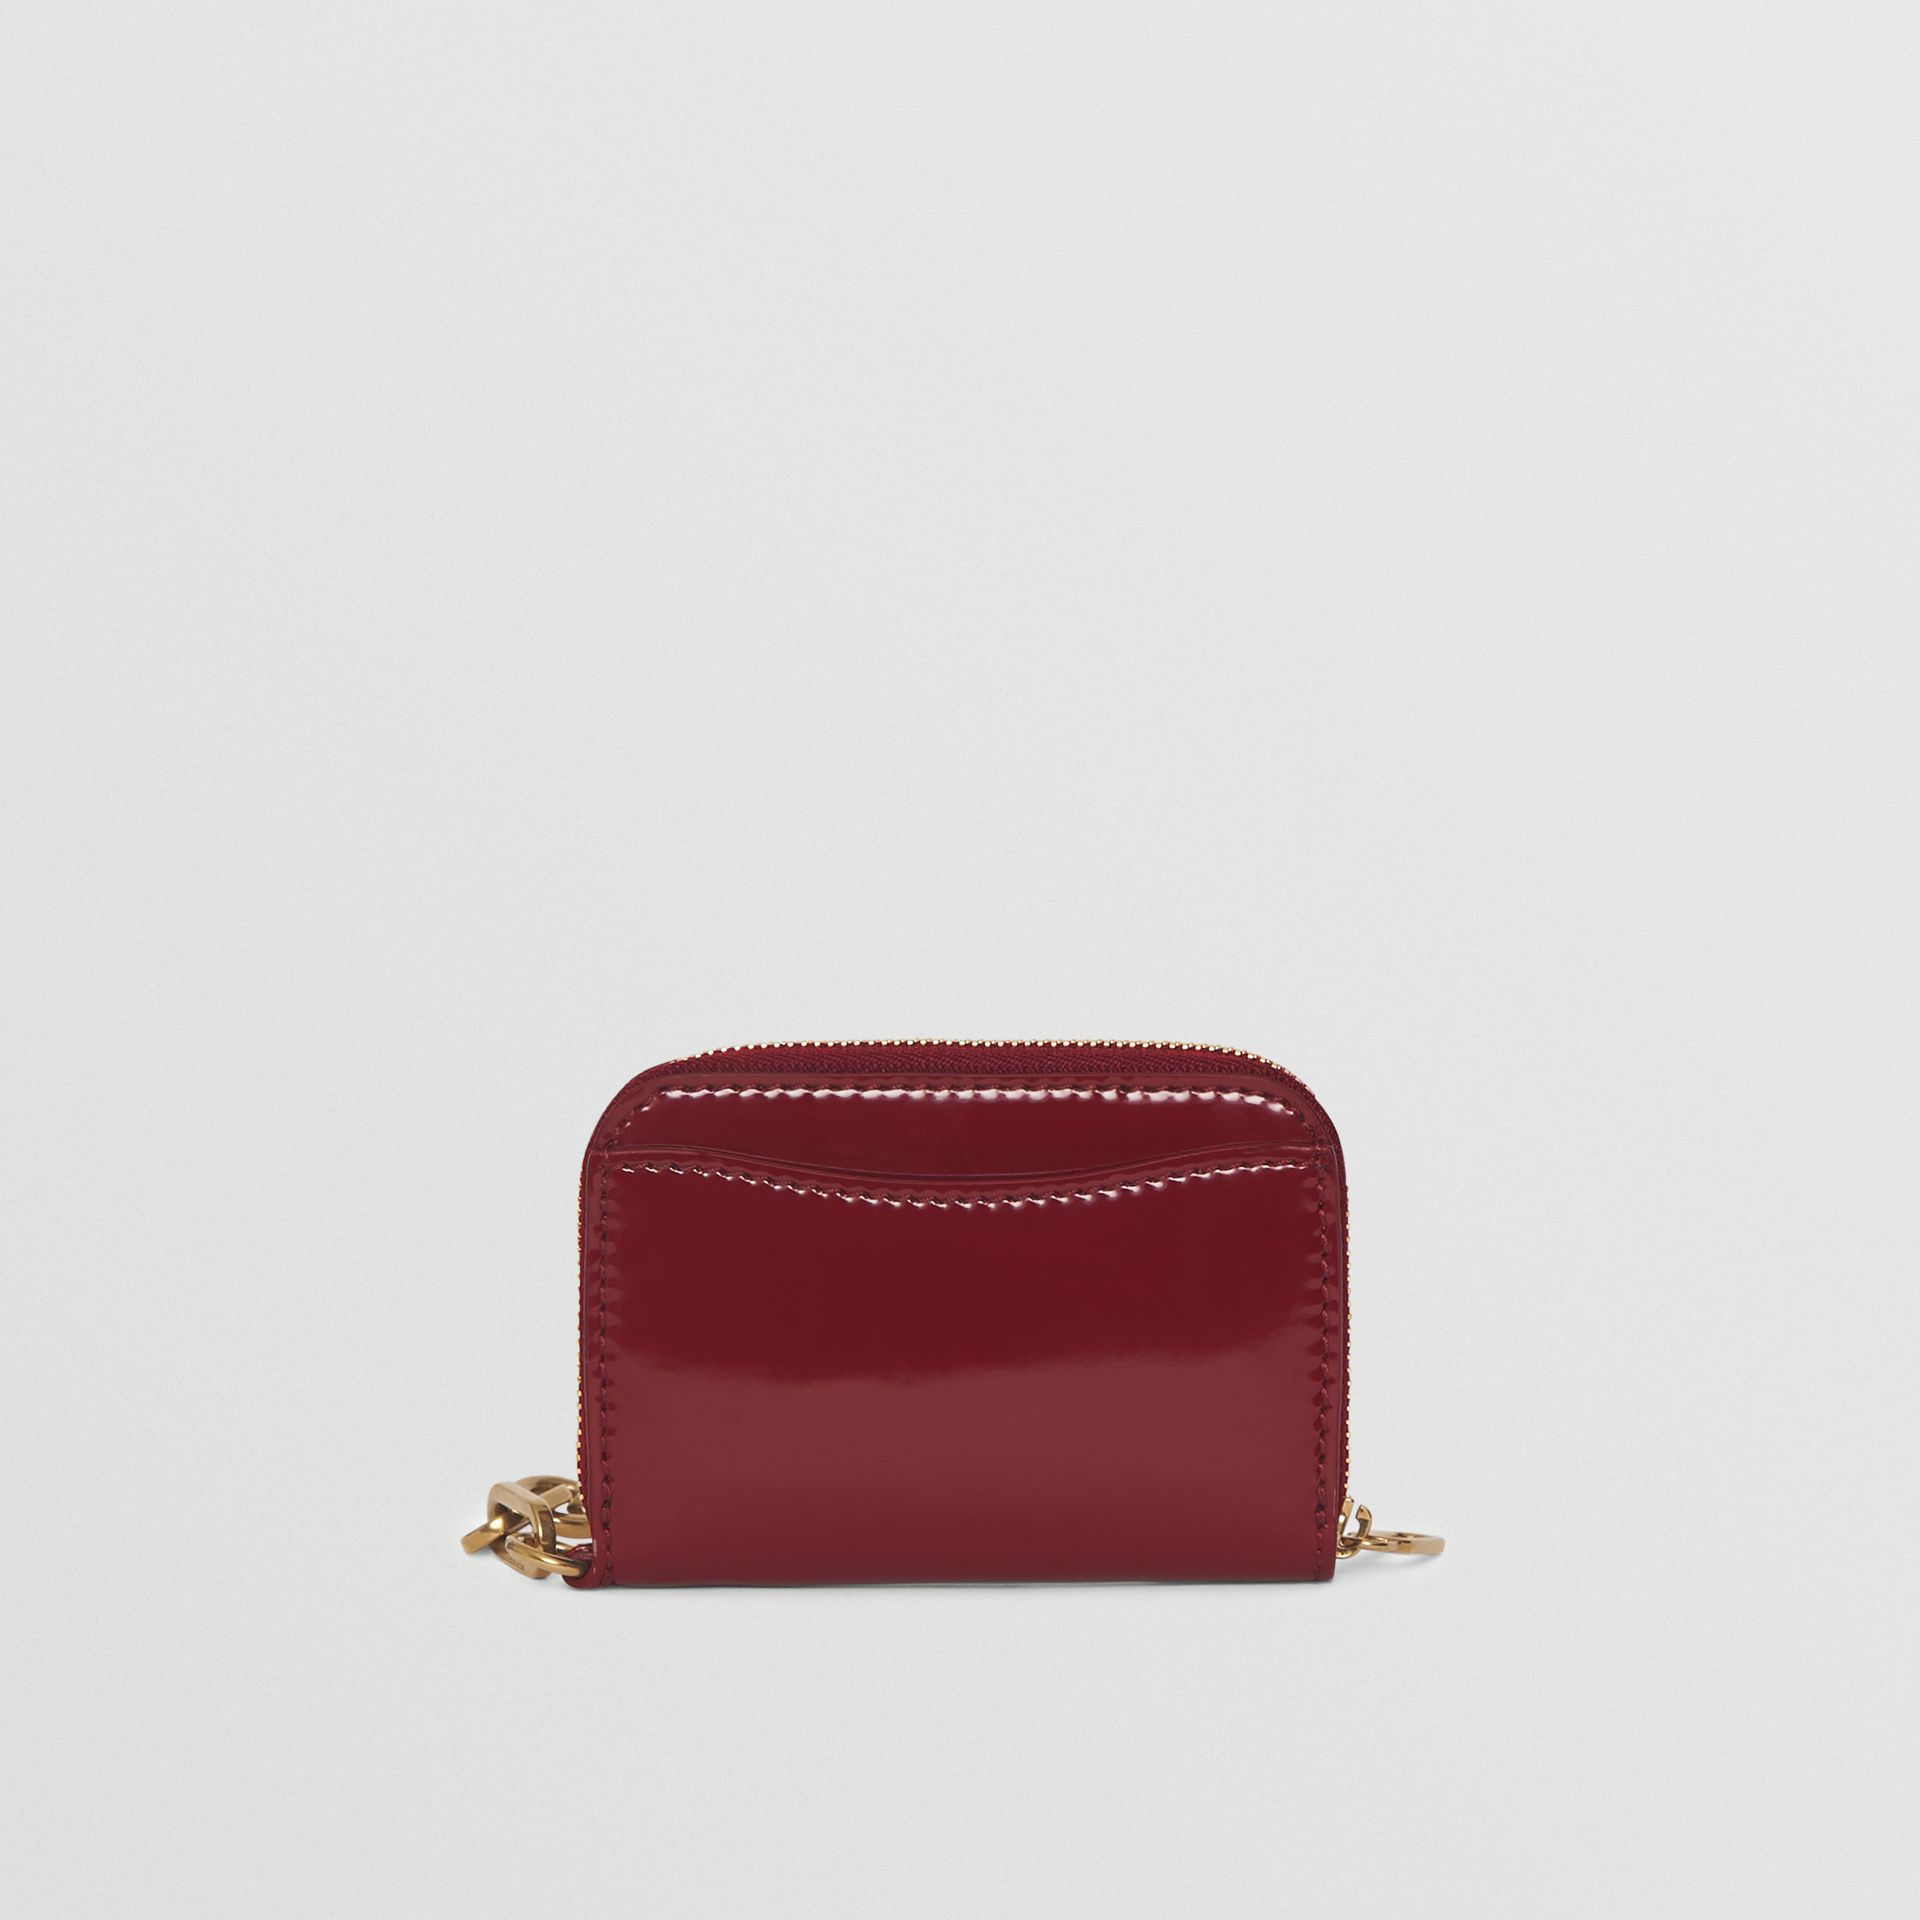 Link Detail Patent Leather Ziparound Wallet in Crimson - Women | Burberry Canada - gallery image 5